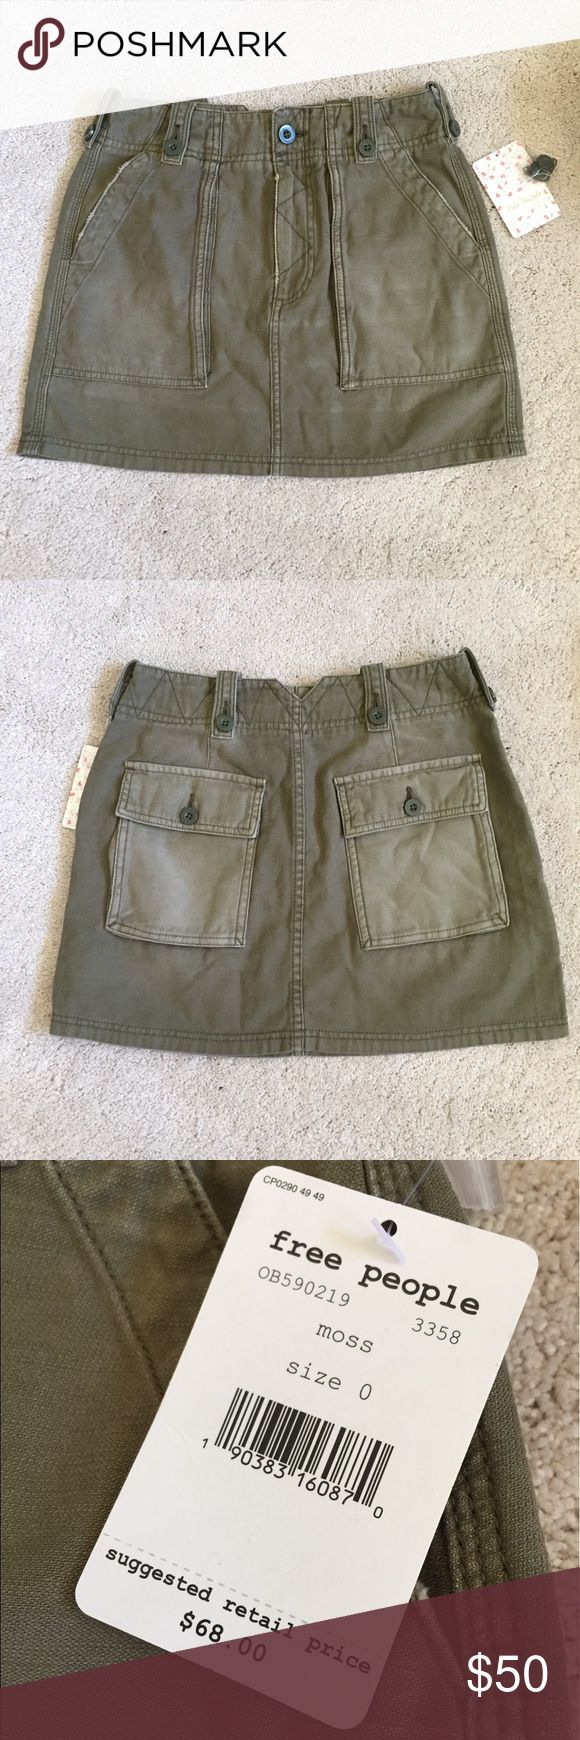 """Free People Military Skirt Brand new with tags.  Approx measurements: Waist: 12.5"""" Length: 13.75"""" Free People Skirts Mini"""